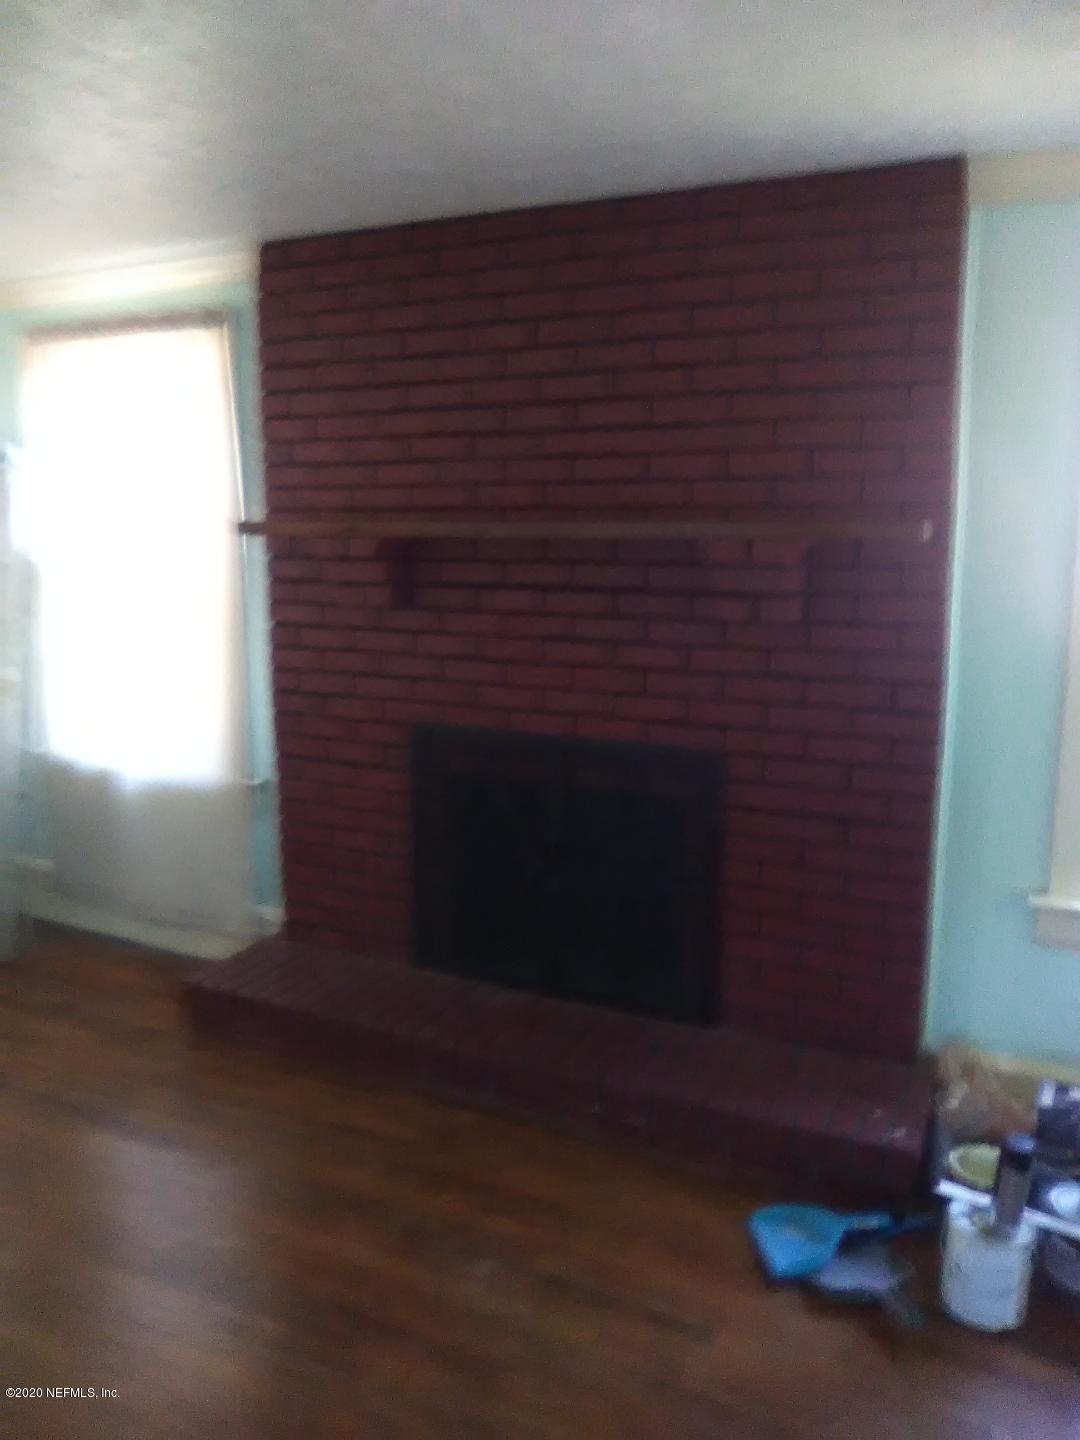 524 60TH, JACKSONVILLE, FLORIDA 32208, 3 Bedrooms Bedrooms, ,1 BathroomBathrooms,Residential,For sale,60TH,1057064